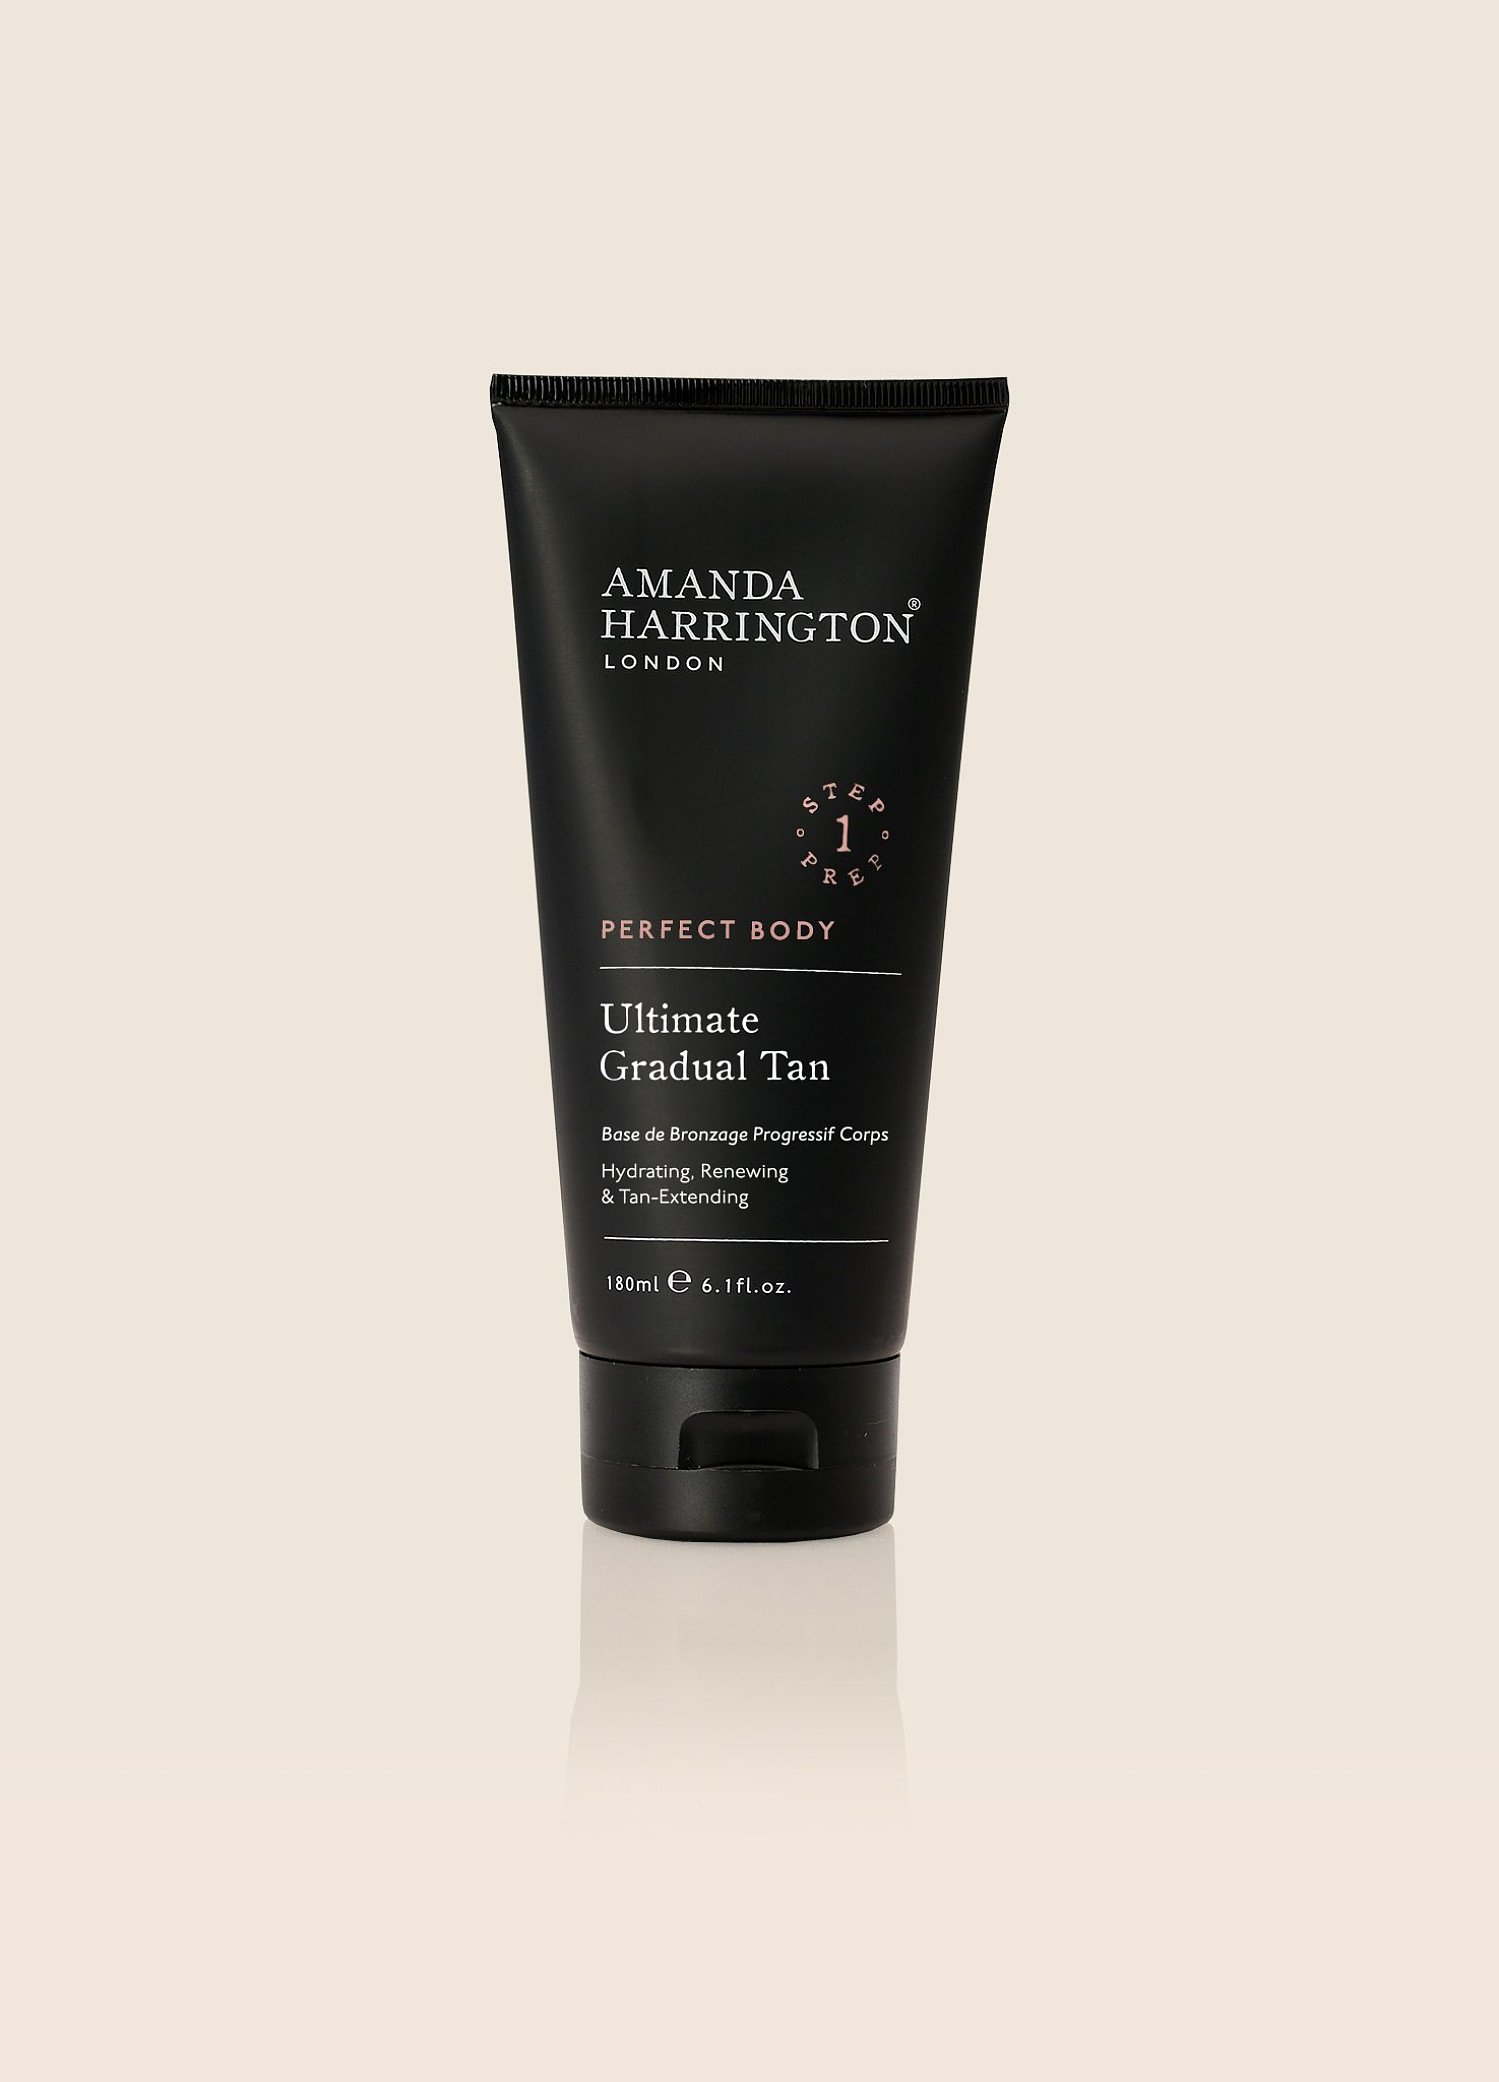 Perfect Body: Ultimate Gradual Tan - £28.00!